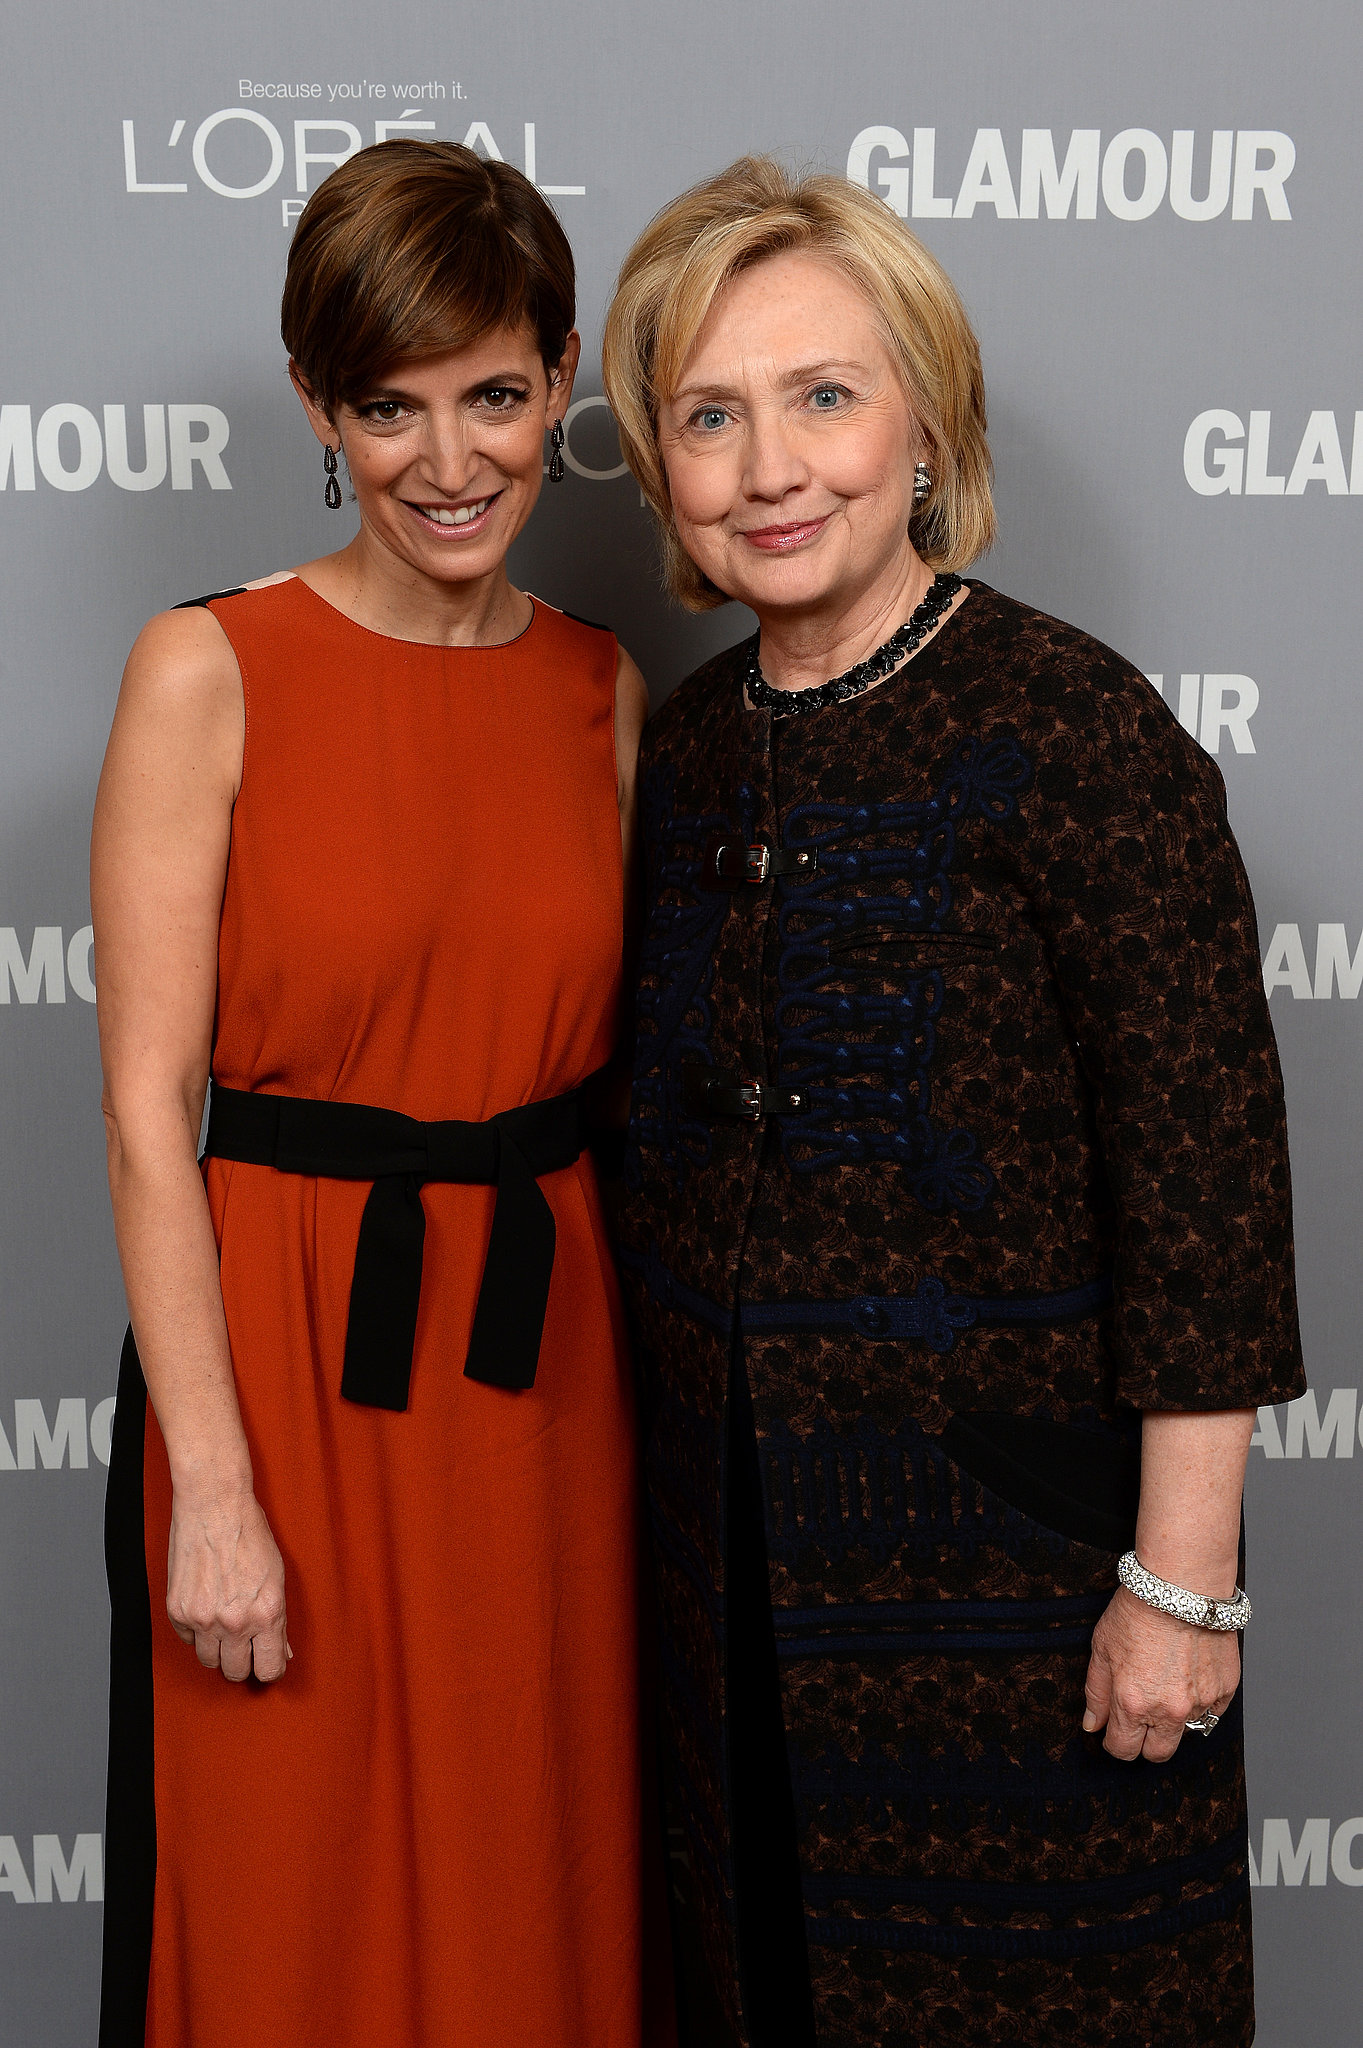 It's Girl Power at Glamour's Women of the Year Awards